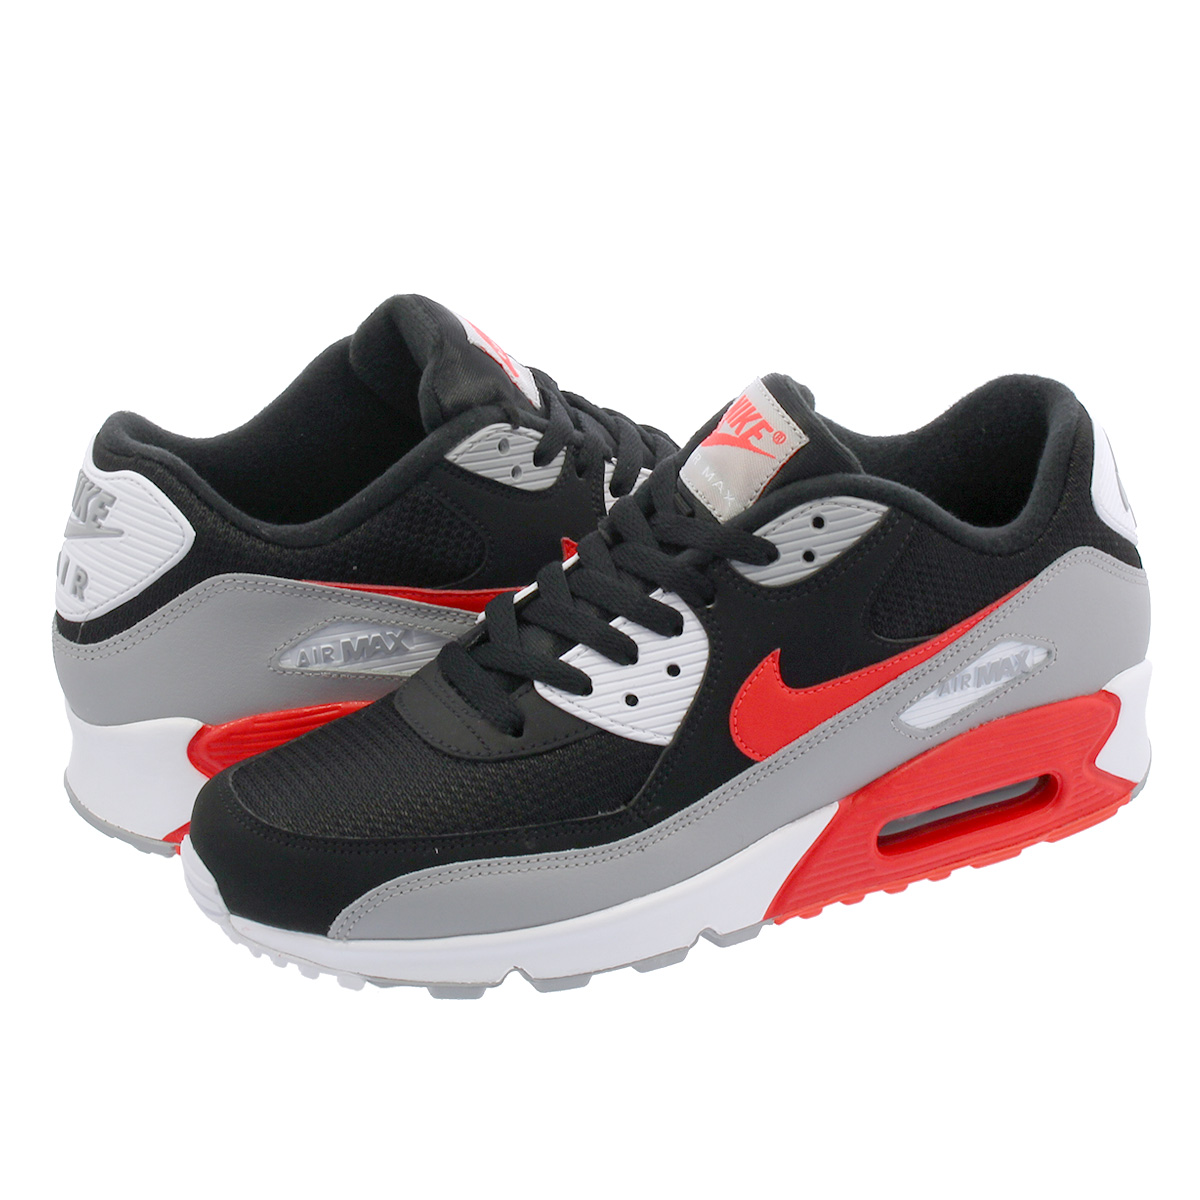 the latest 0e4be 65646 NIKE AIR MAX 90 ESSENTIAL Kie Ney AMAX 90 essential BLACK WOLF GREY BRIGHT  CRIMSON aj1285-012